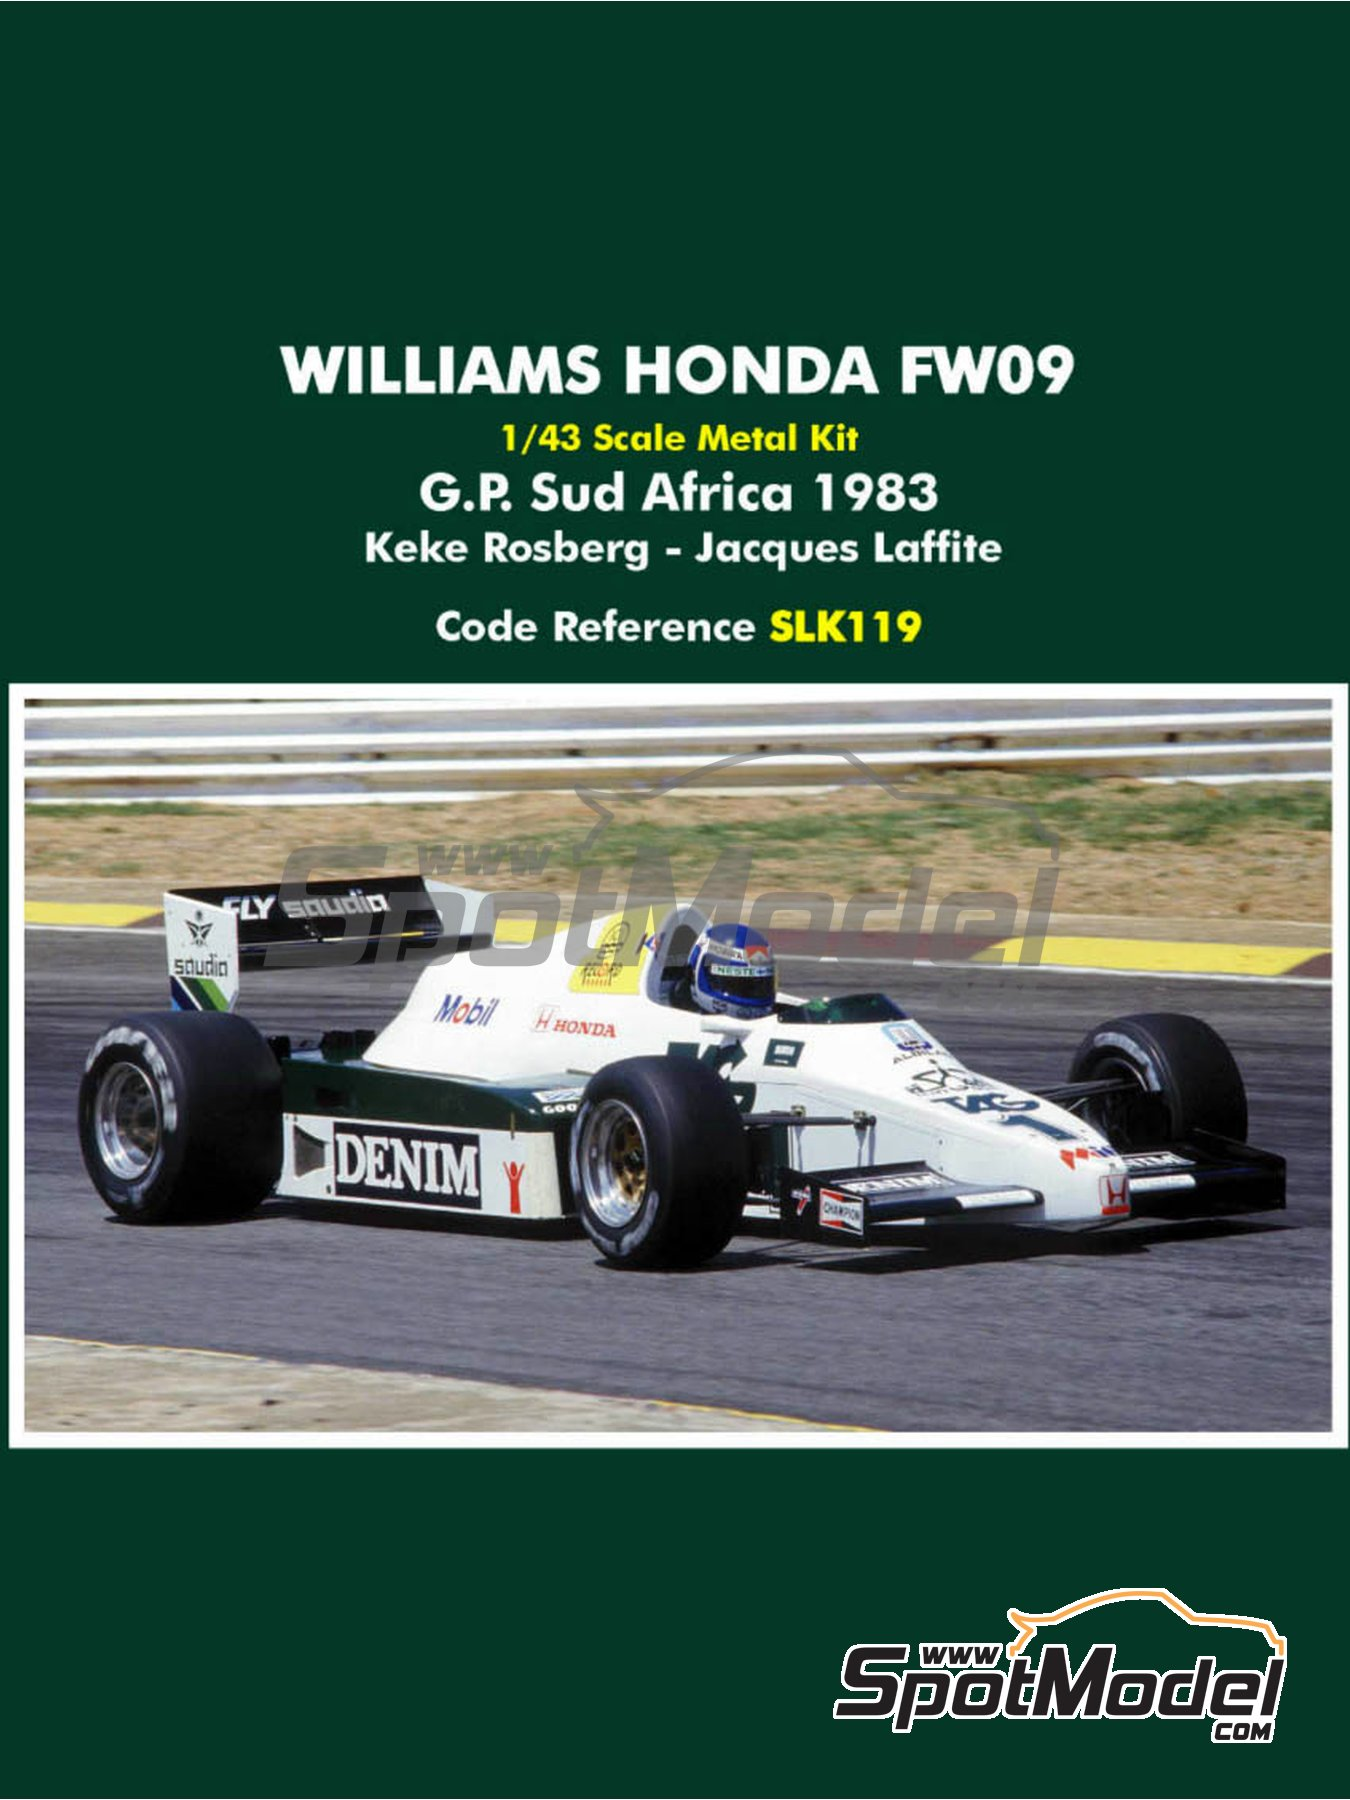 Williams Honda FW09 TAG Denim - South African Formula 1 Grand Prix 1983 | Model car kit in 1/43 scale manufactured by Tameo Kits (ref. SLK119) image